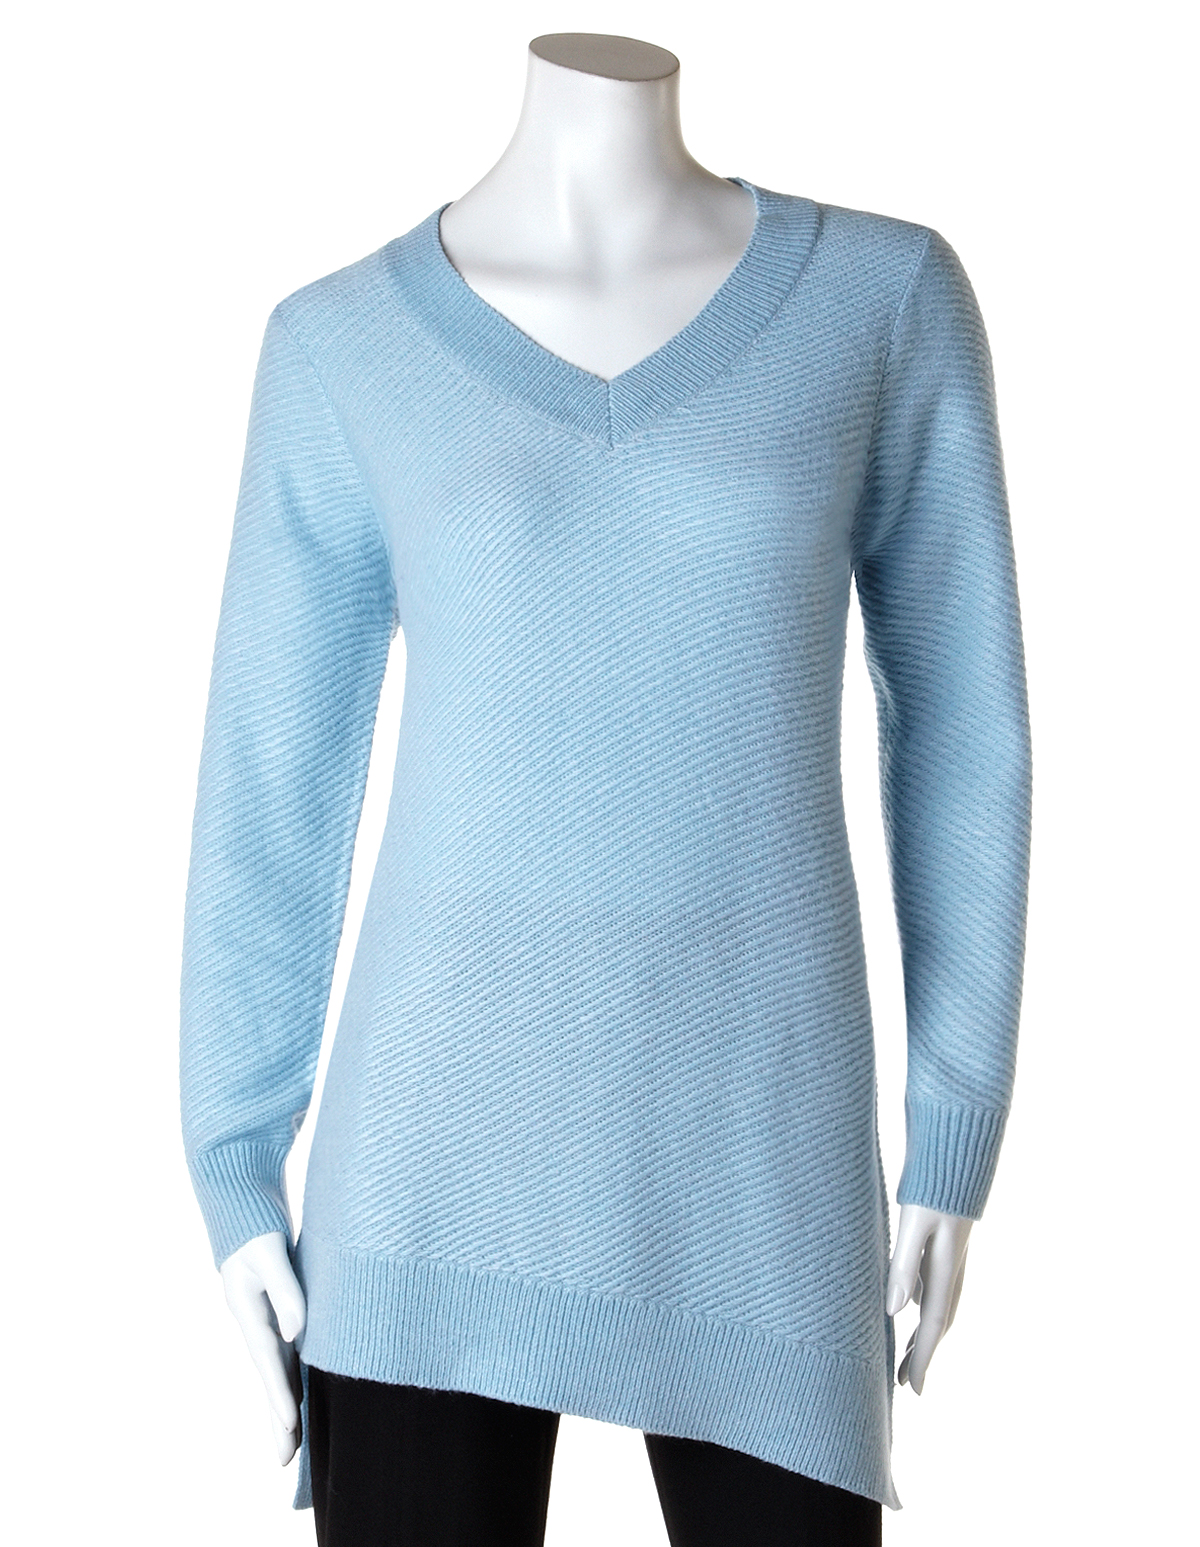 0f25afd4247e4 Asymmetrical Ribbed Knit Sweater